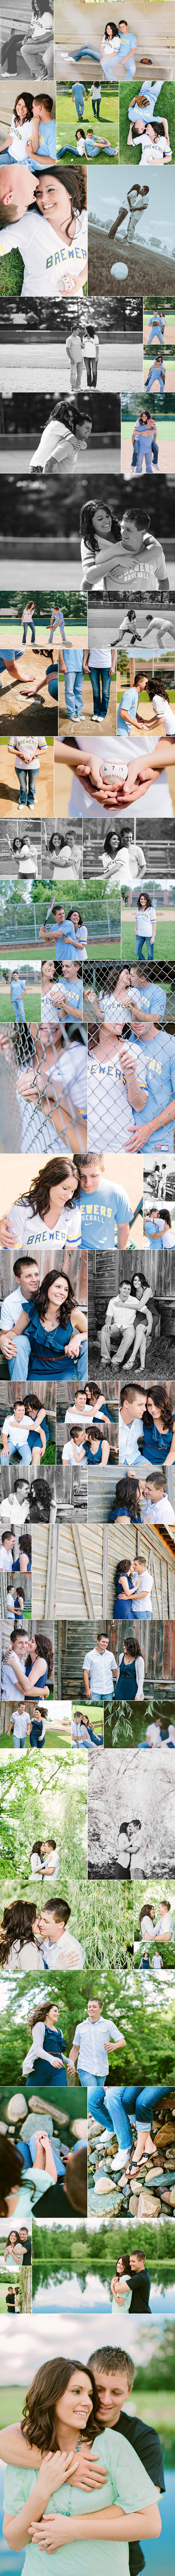 baseball themed engagement James Stokes Photography Central Wisconsin Wedding Photographer Brewers Baseball Themed Engagement | Jenna & Nath...